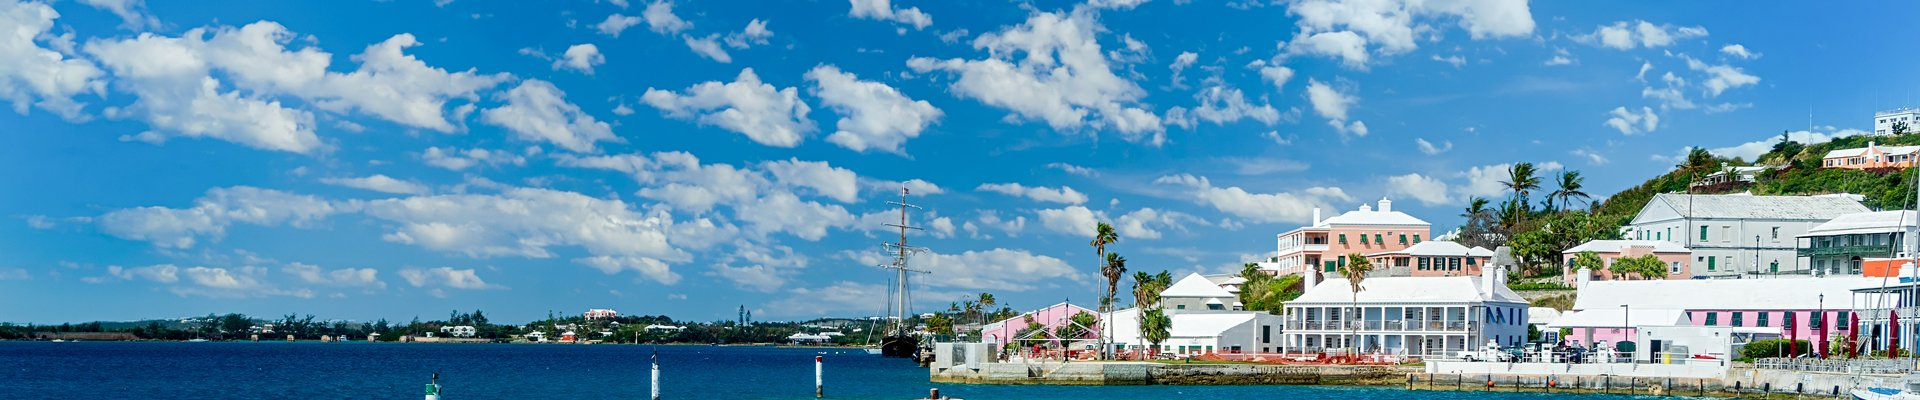 Waterfront in St. George's, Bermuda.